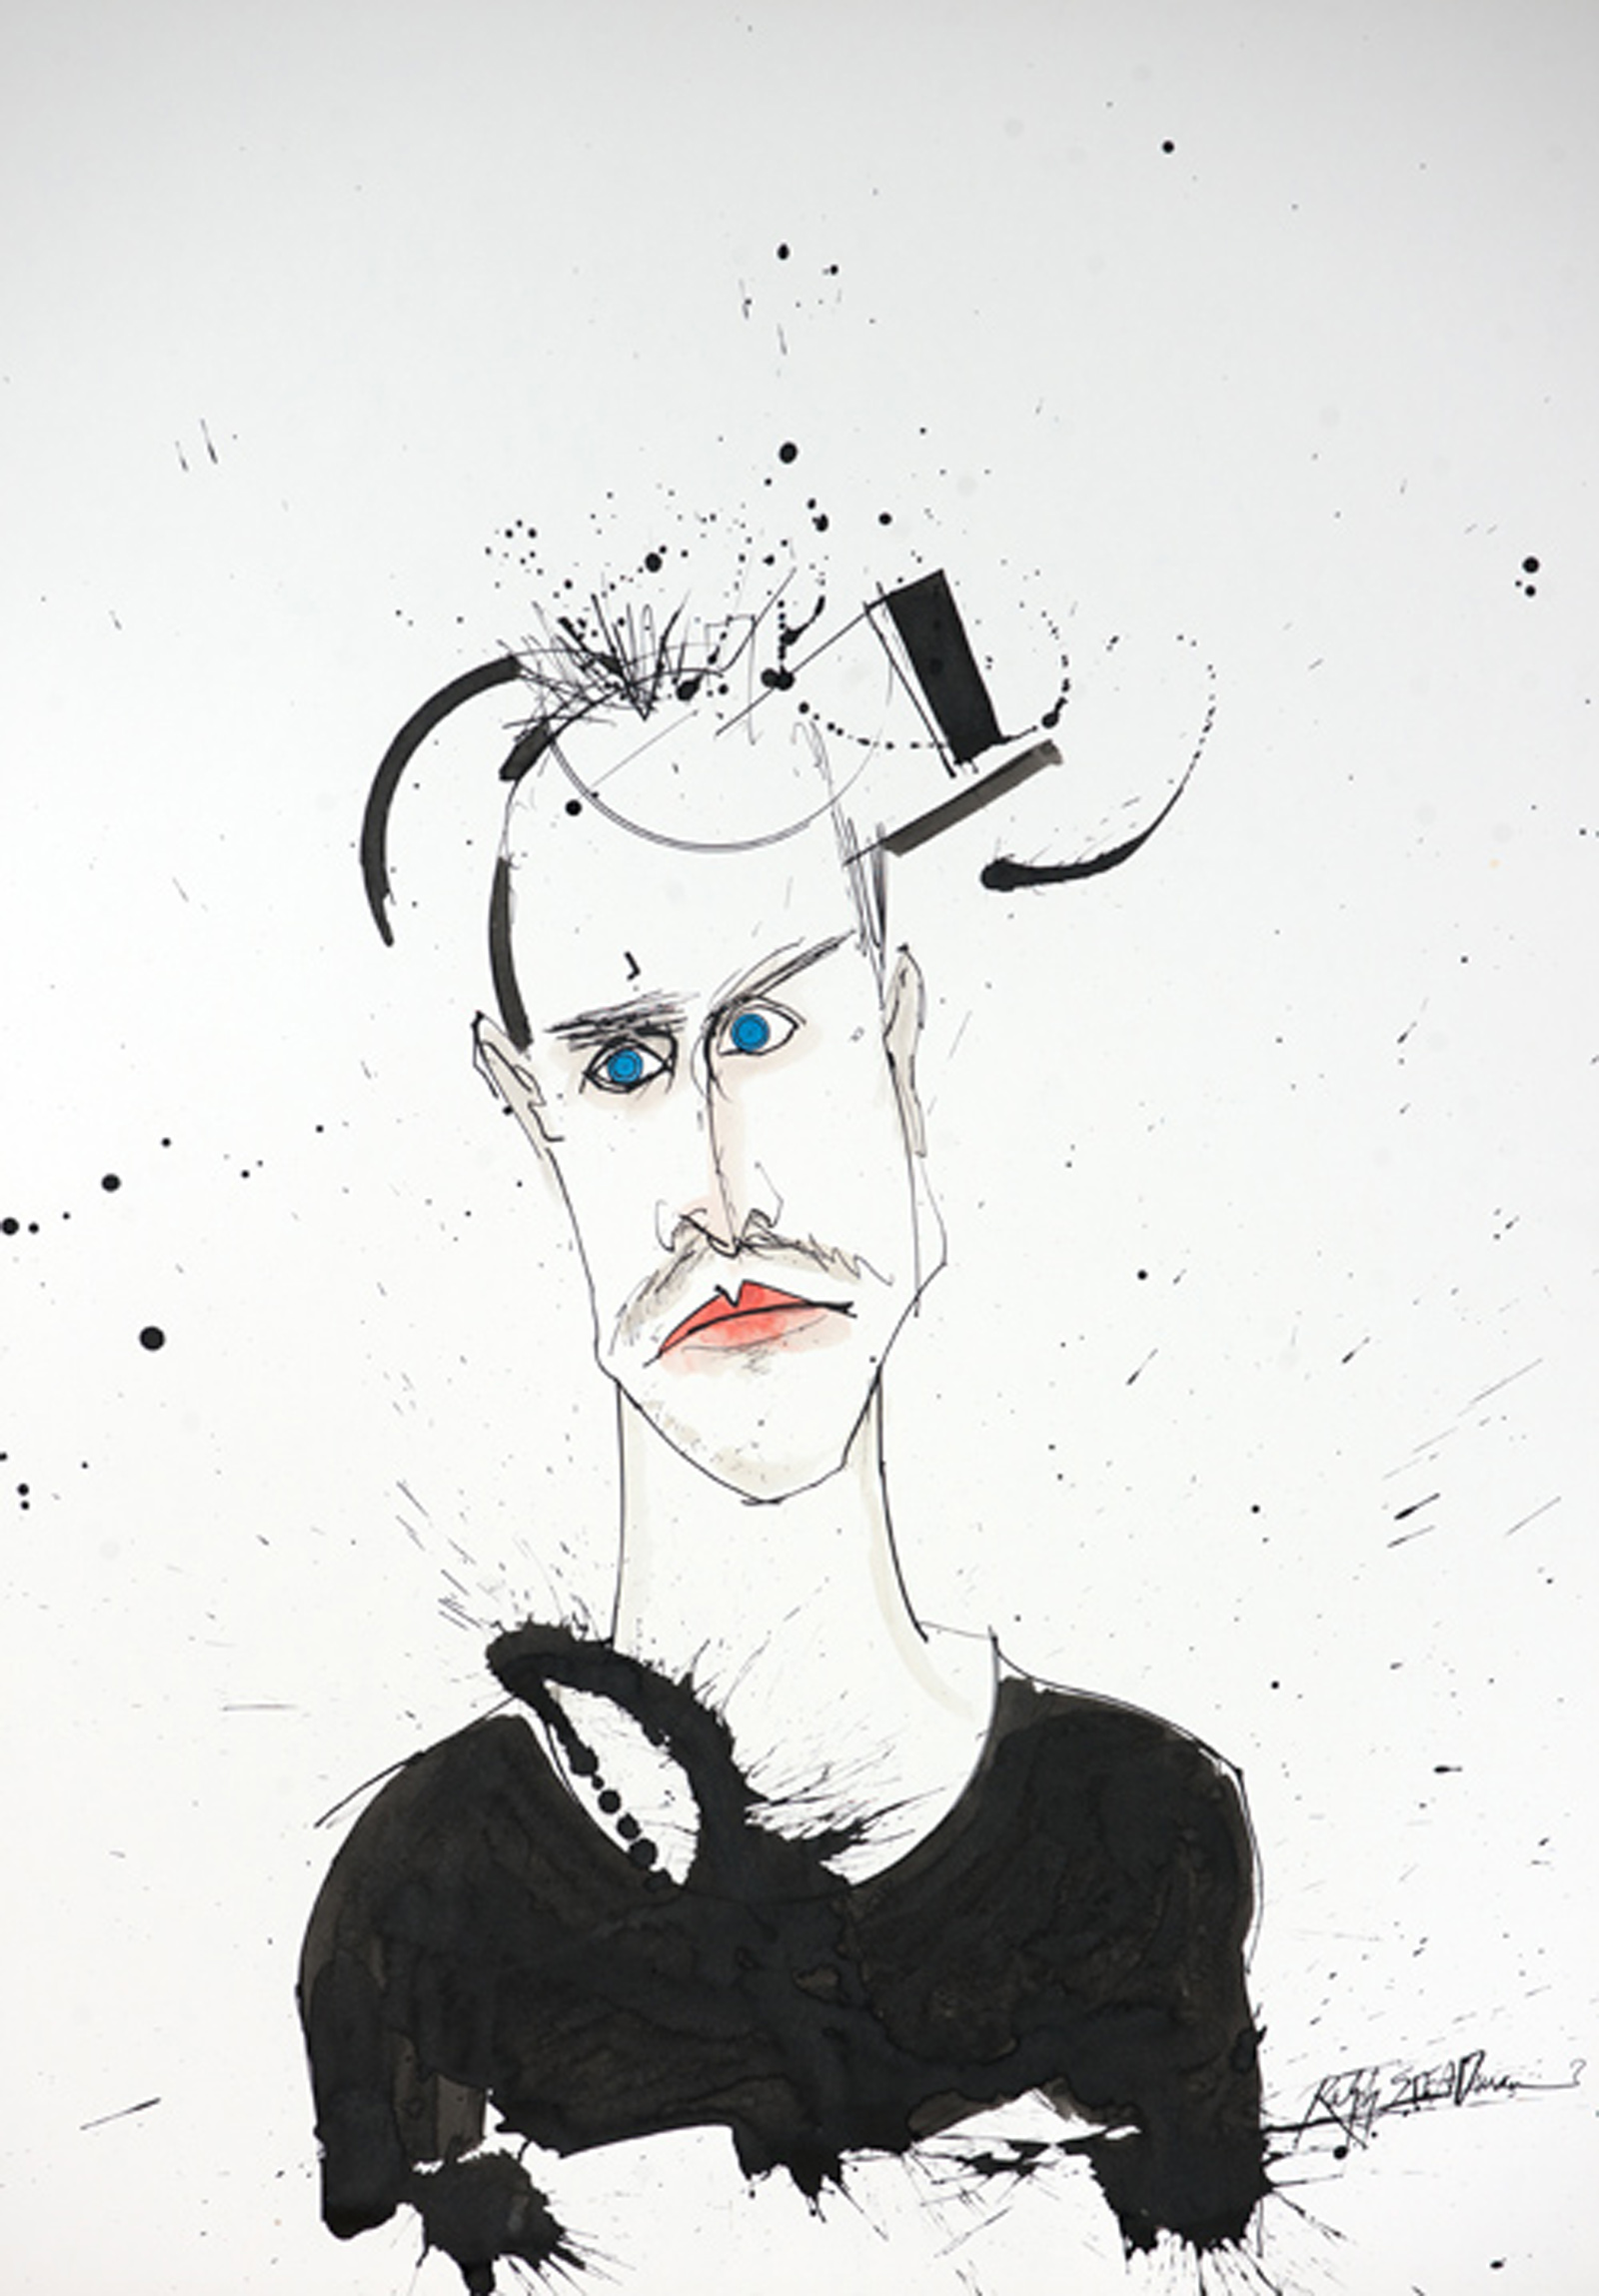 A portrait of the character, Jesse Pinkeman from the TV show, Breaking Bad by Ralph Steadman